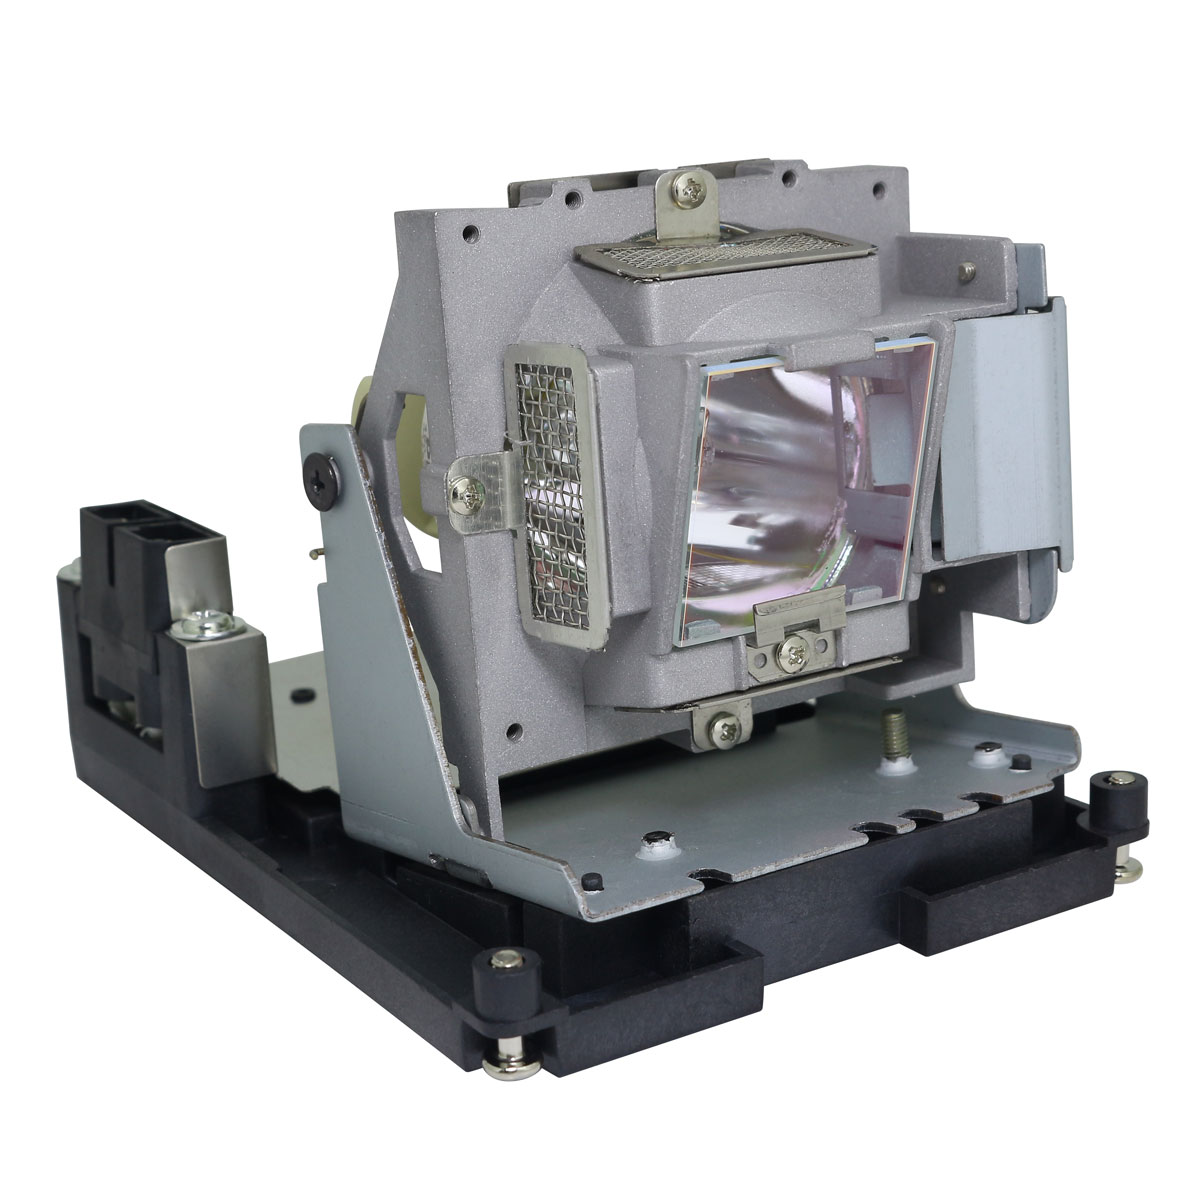 Original Philips Projector Lamp Replacement with Housing for BenQ MP735 - image 1 de 5